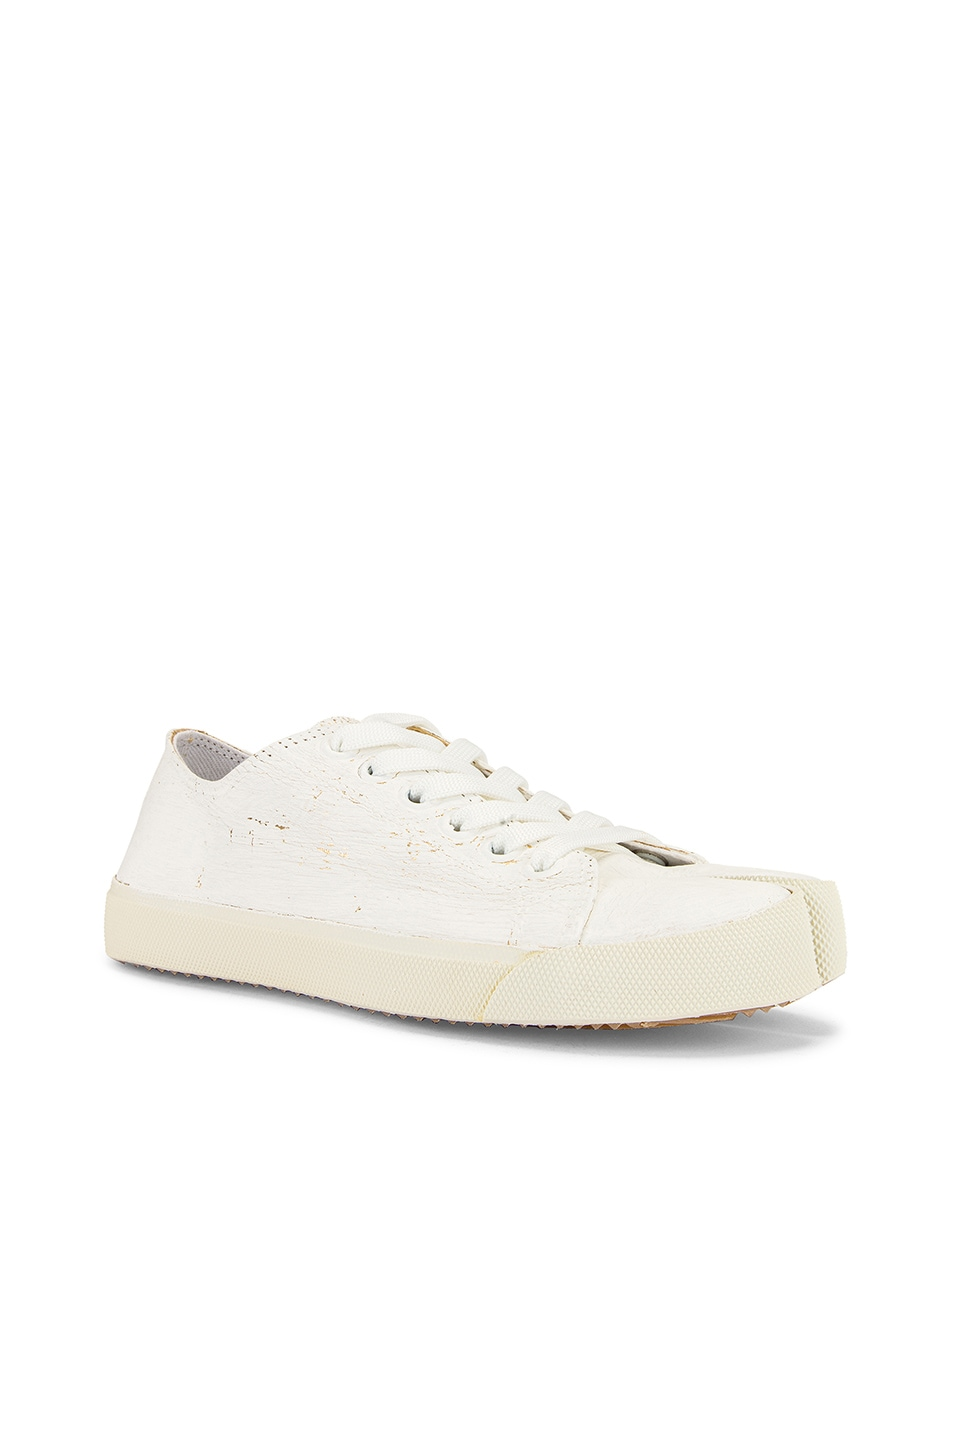 Image 3 of Maison Margiela Low Top Tabi Sneakers in White & Gold